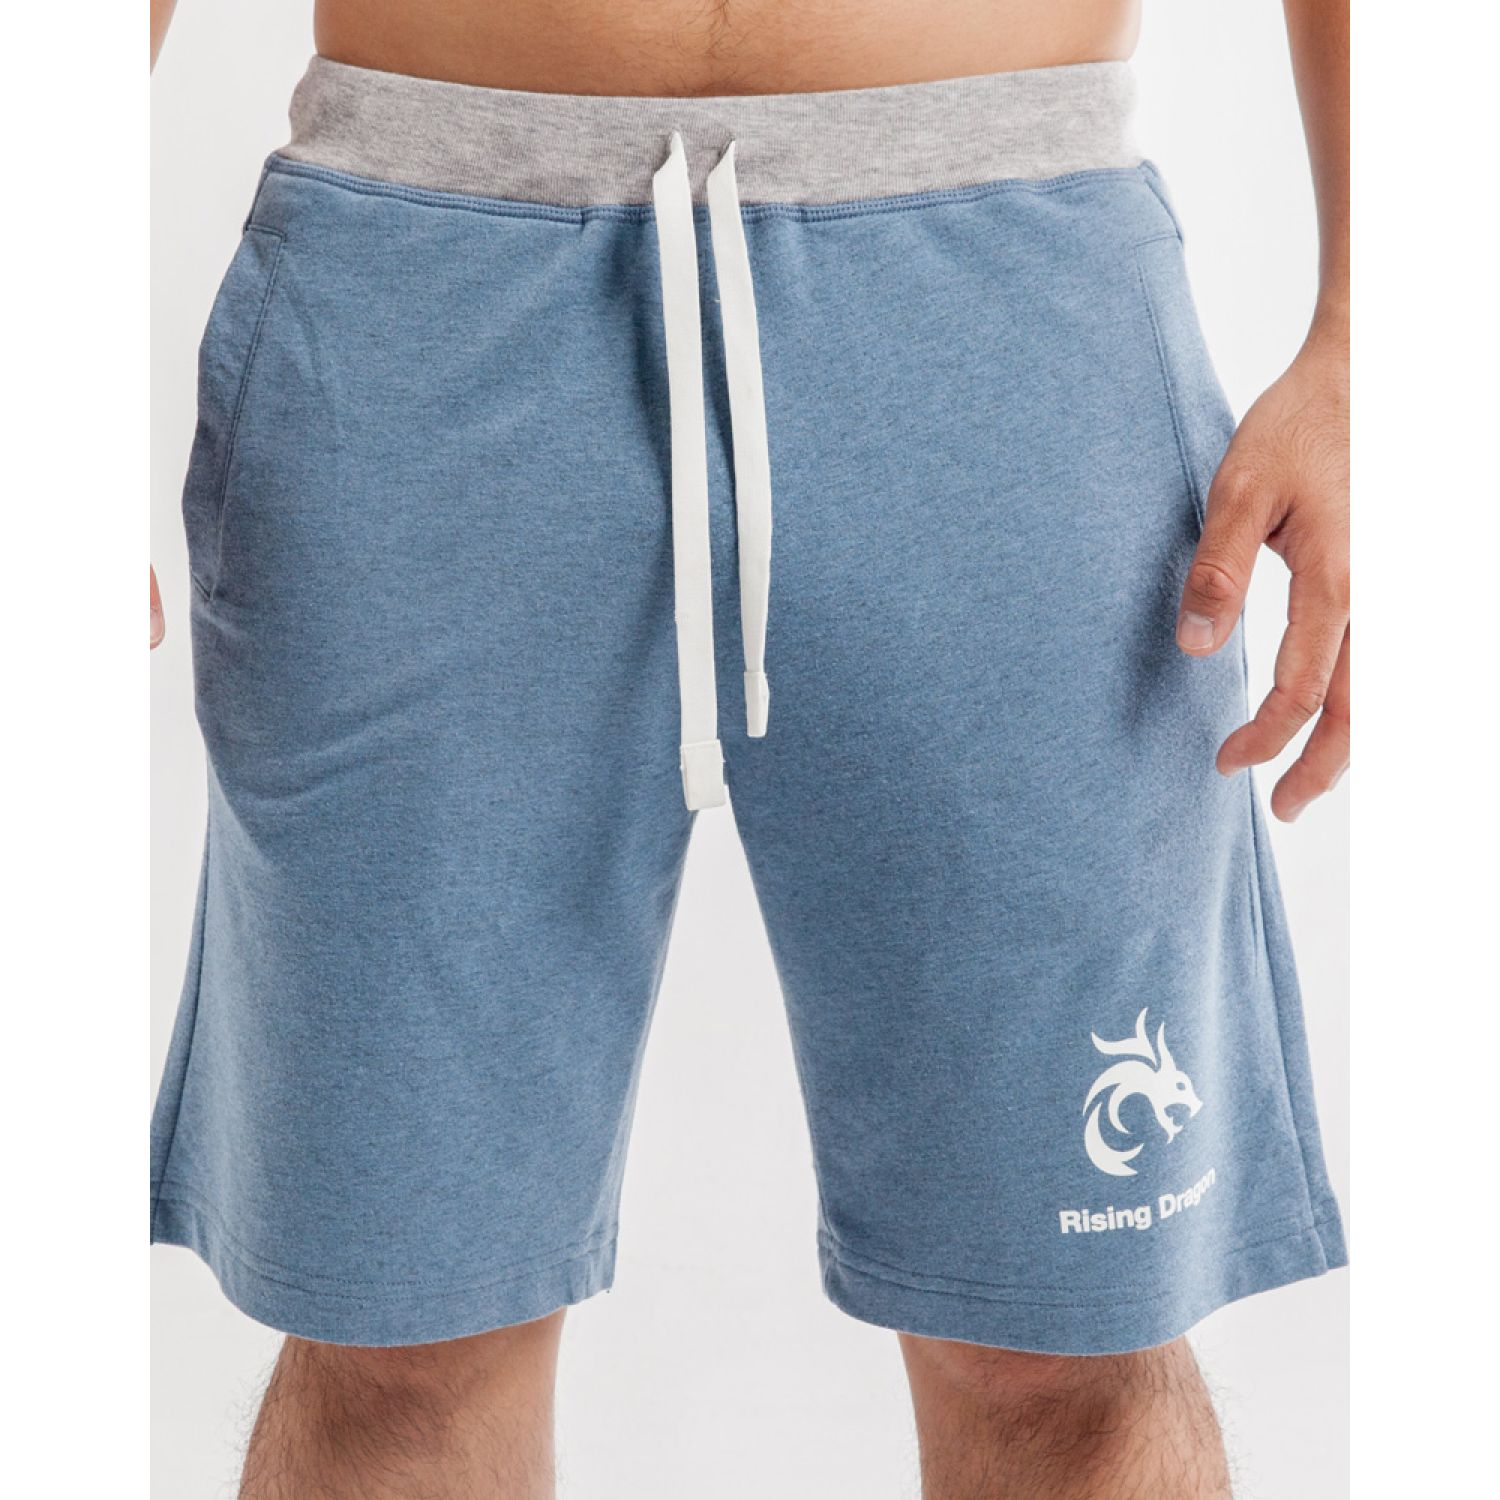 Rising Dragon short de buzo ft acero blanco Acero / blanco Shorts Deportivos